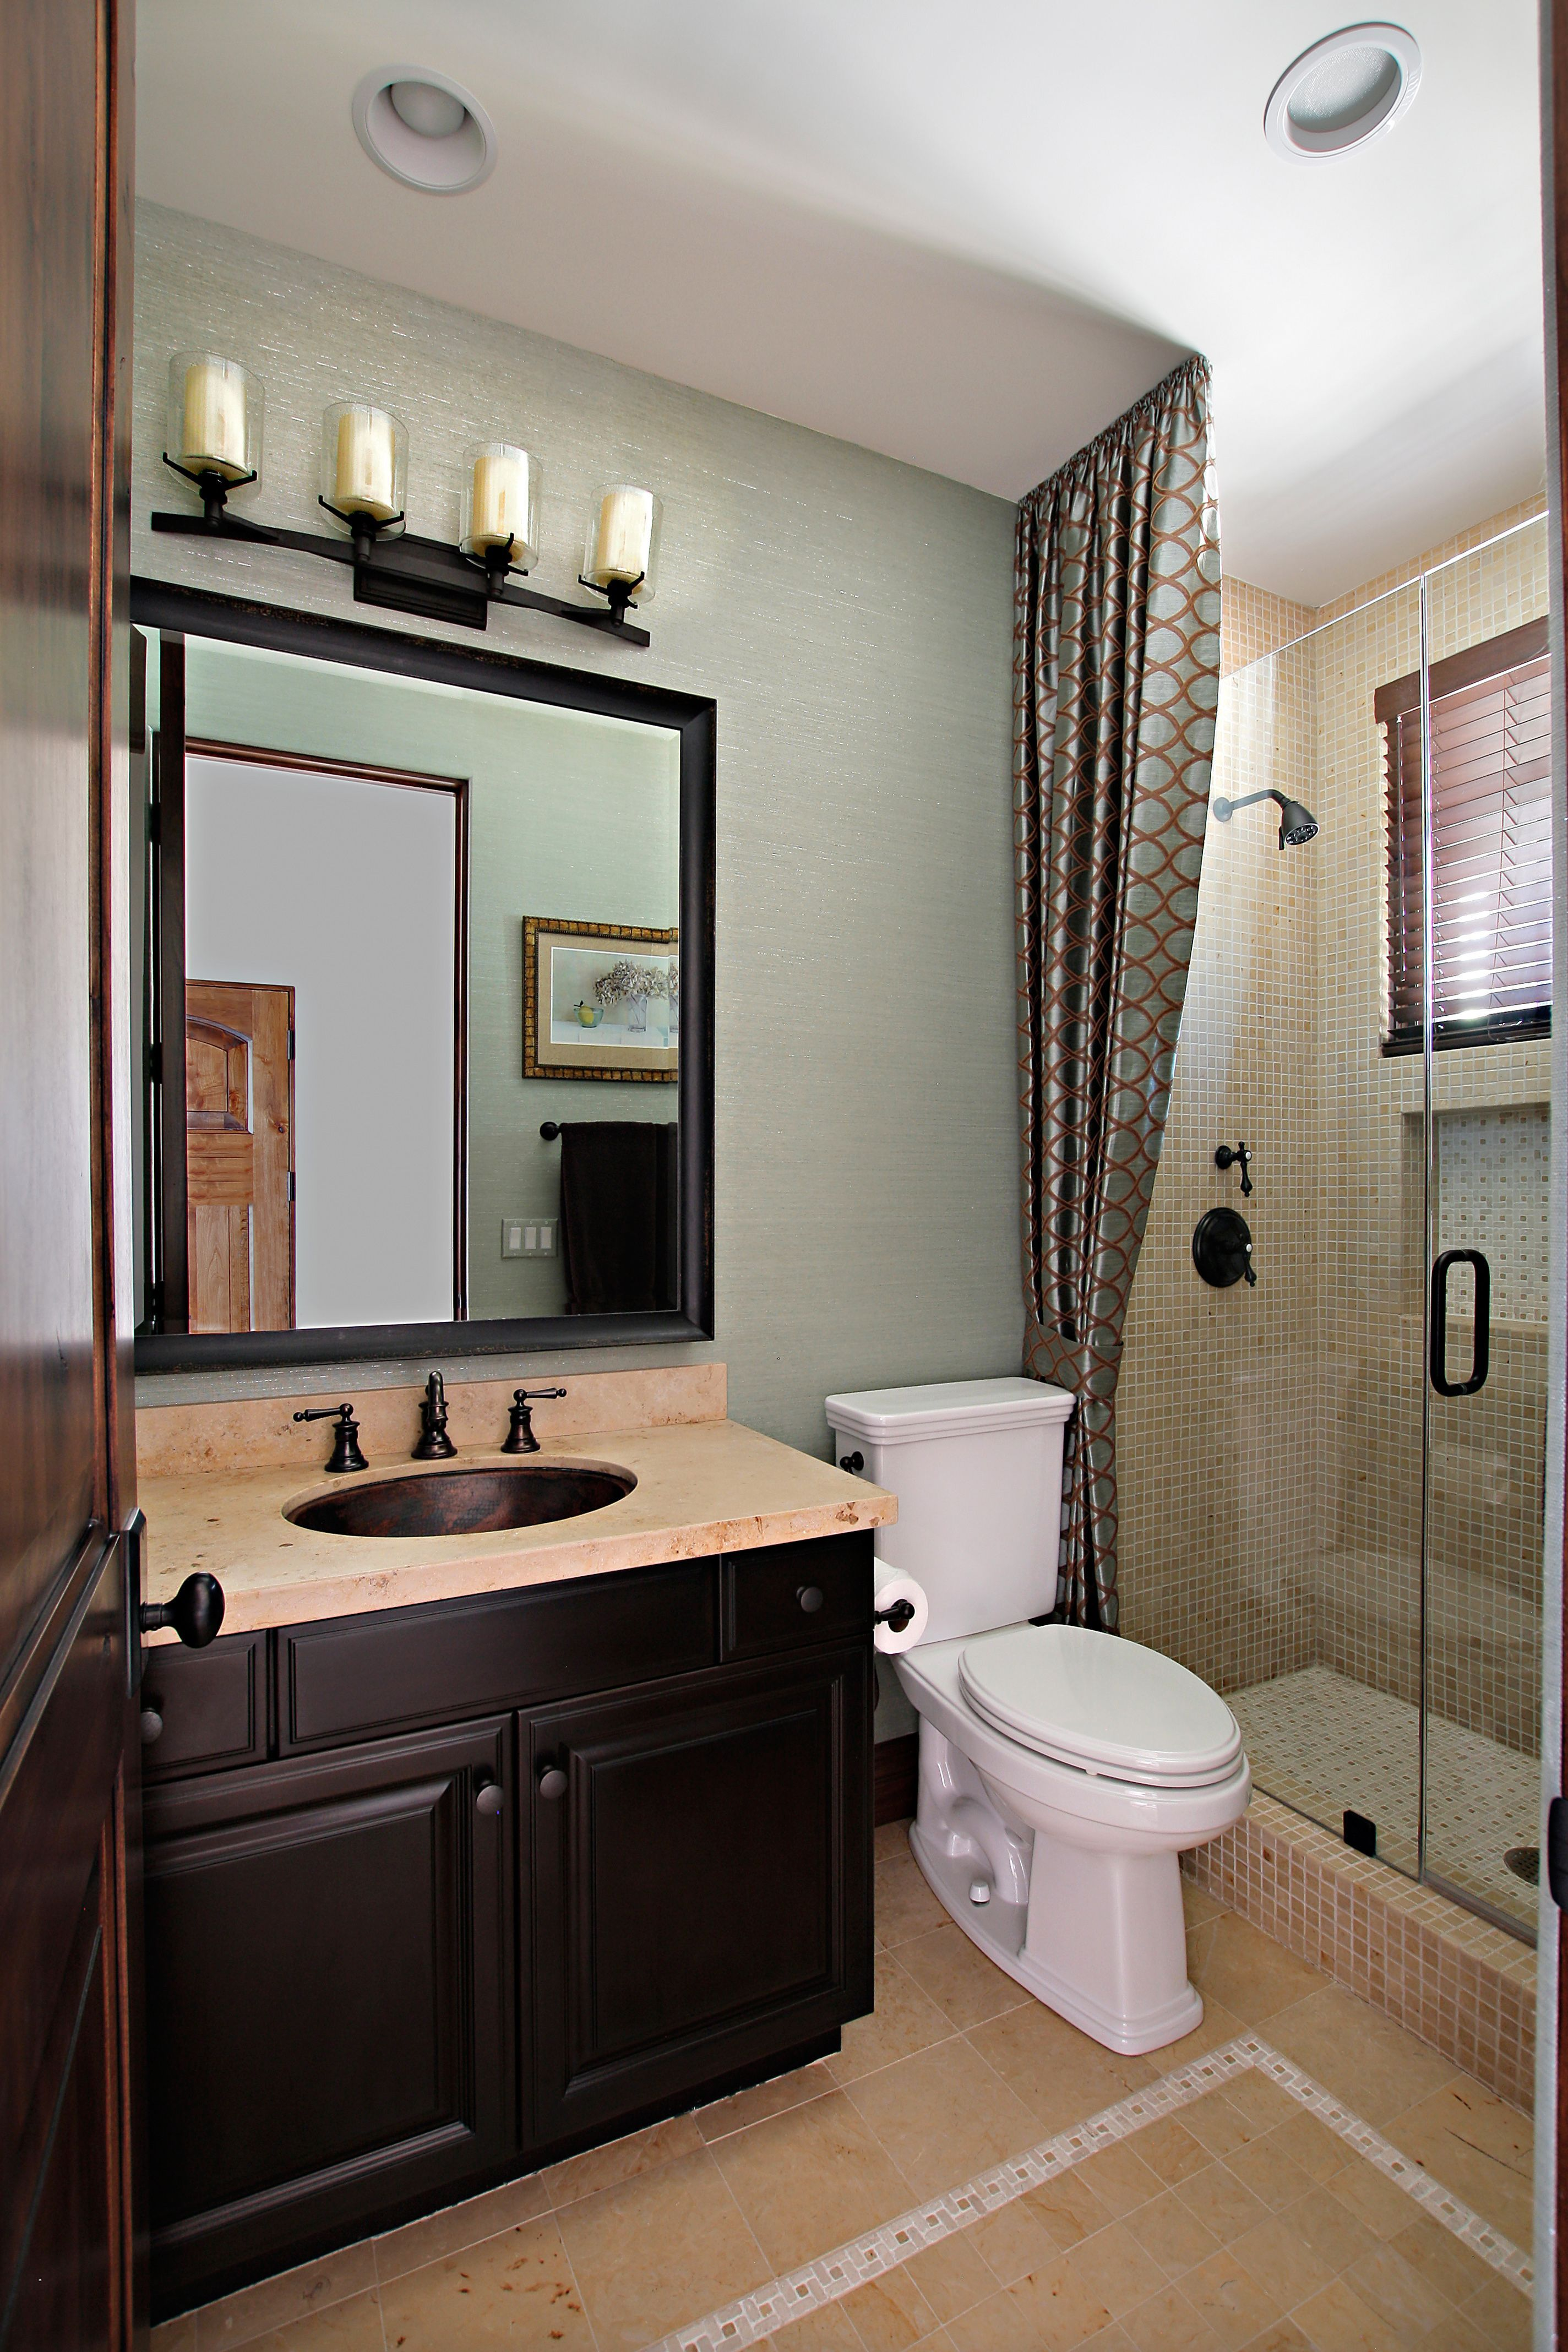 guest rooms are often multifunctional for the most time on modern functional bathroom design id=80144